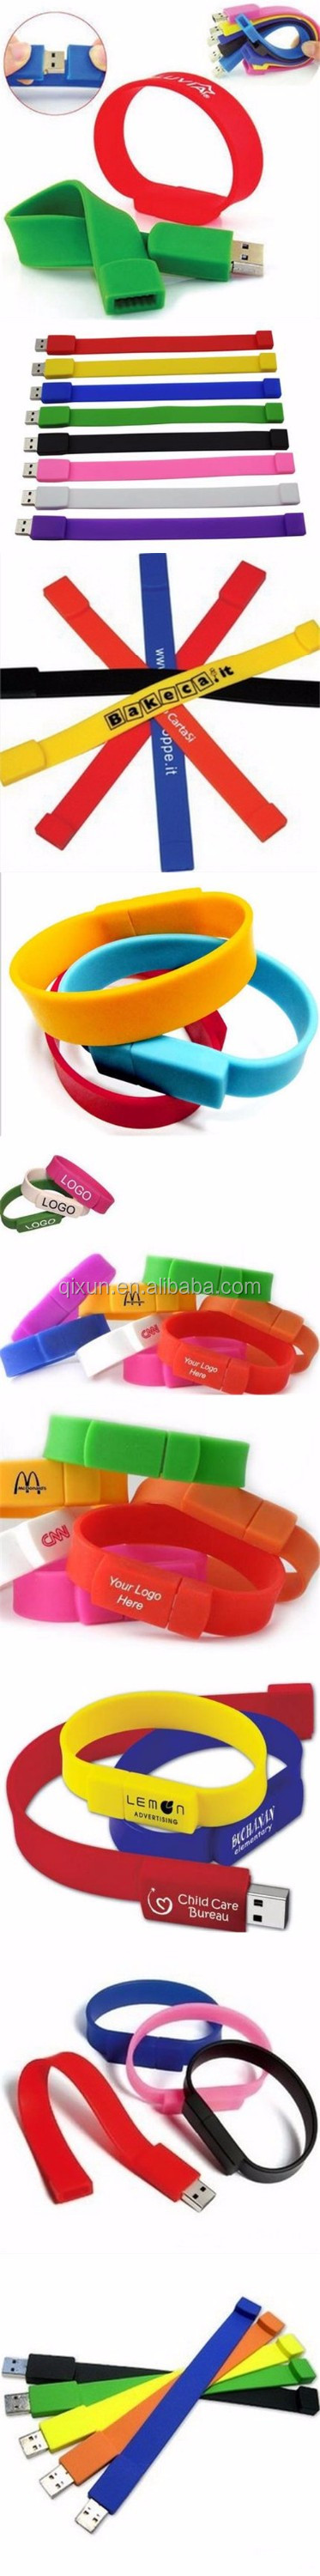 safe paypal payment 1/32/64/128/256/512MB 1/2/4/8/16/32/64/128/256/512GB 1/2TB cheap funny usb flash drives memory for kids